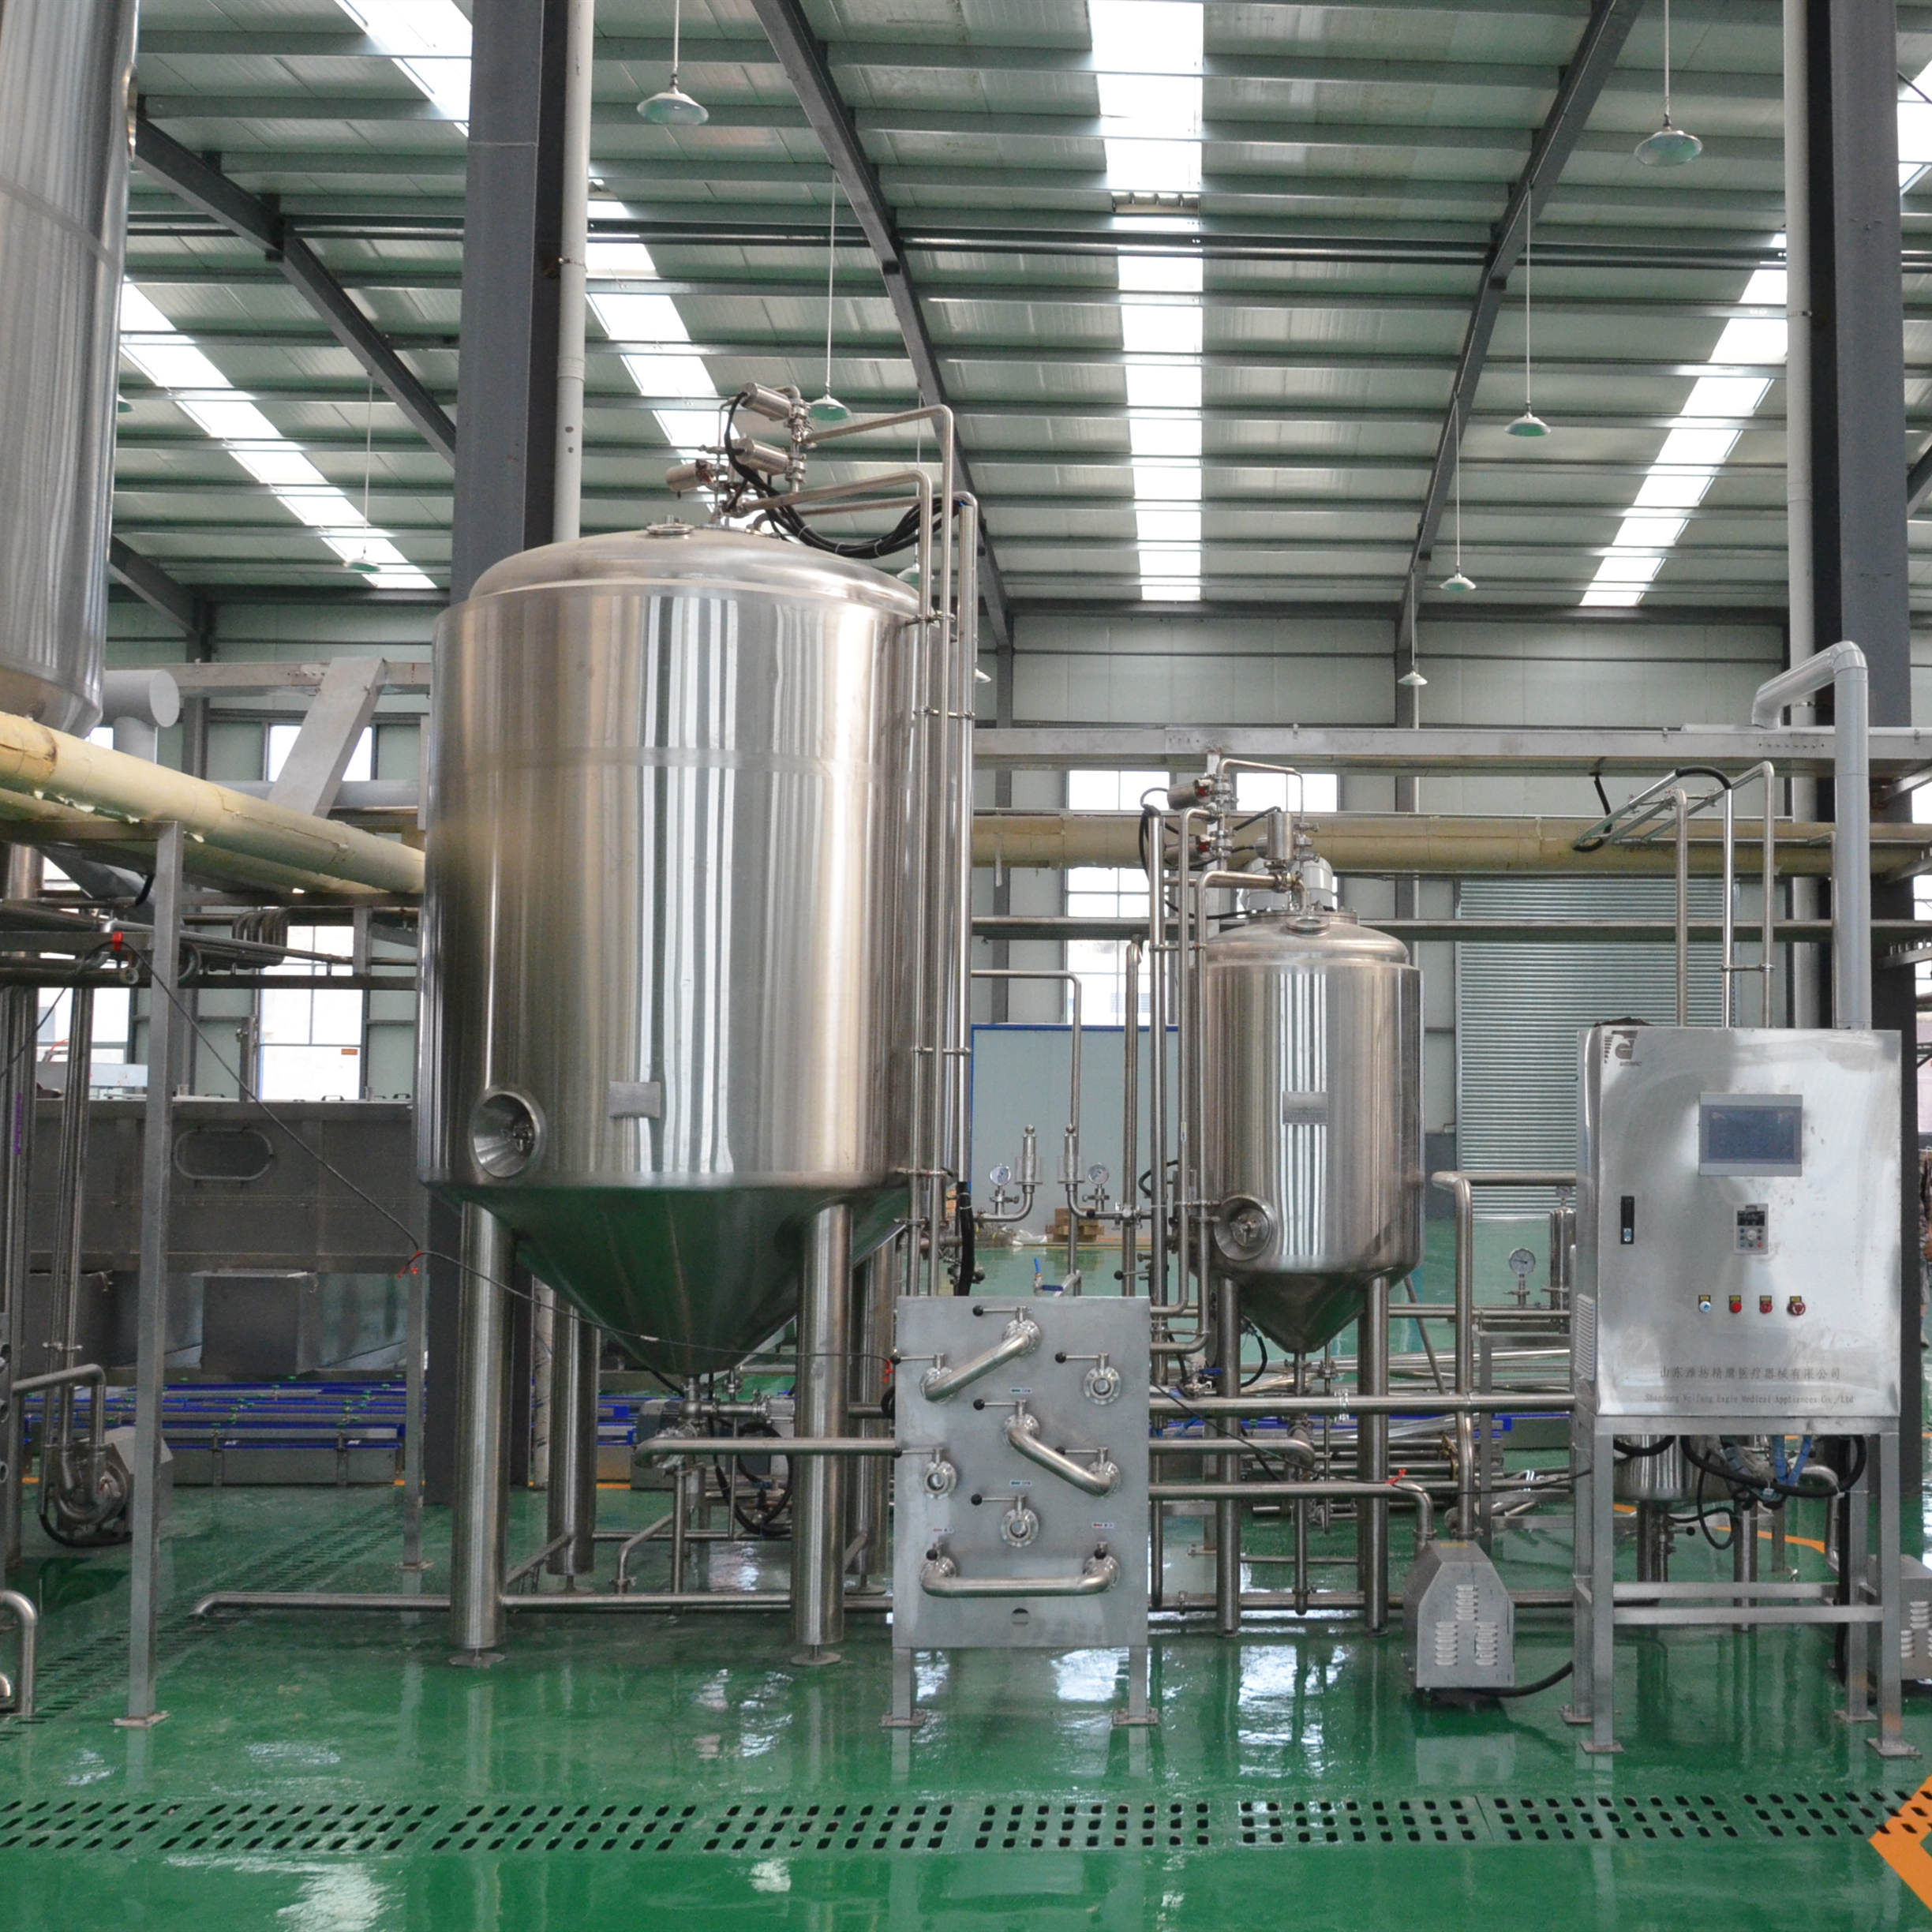 Stainless steel big size commercial industrial beer making equipment from Chinese factory hot sell in Australia Z13